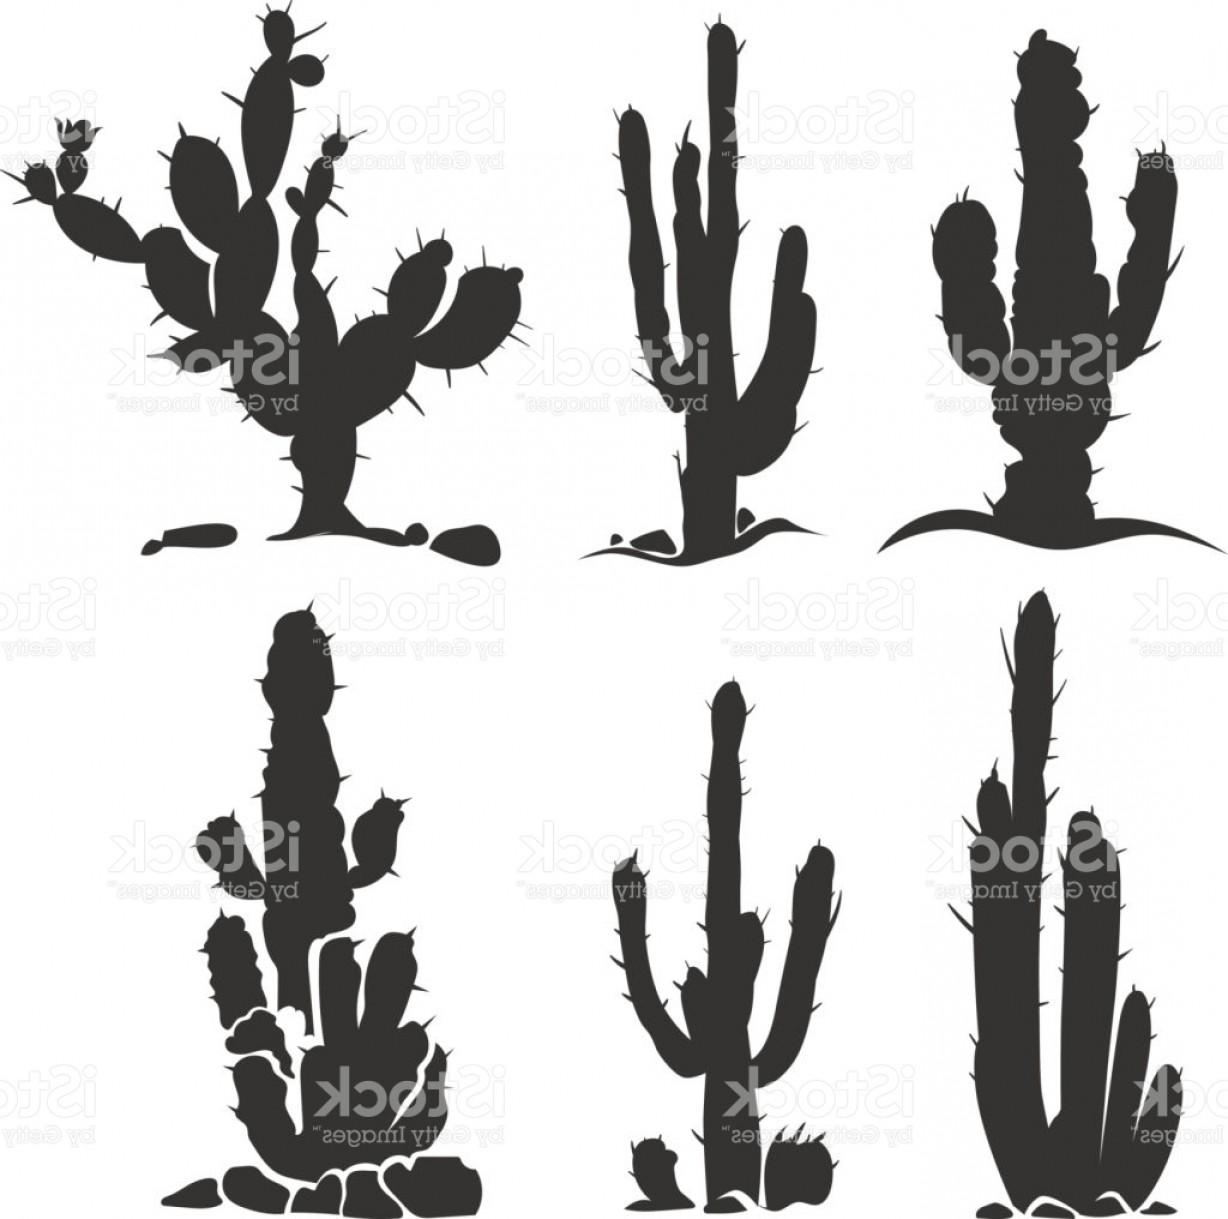 1228x1219 Desert Cactus Vector Silhouette Plants Isolated On White Gm